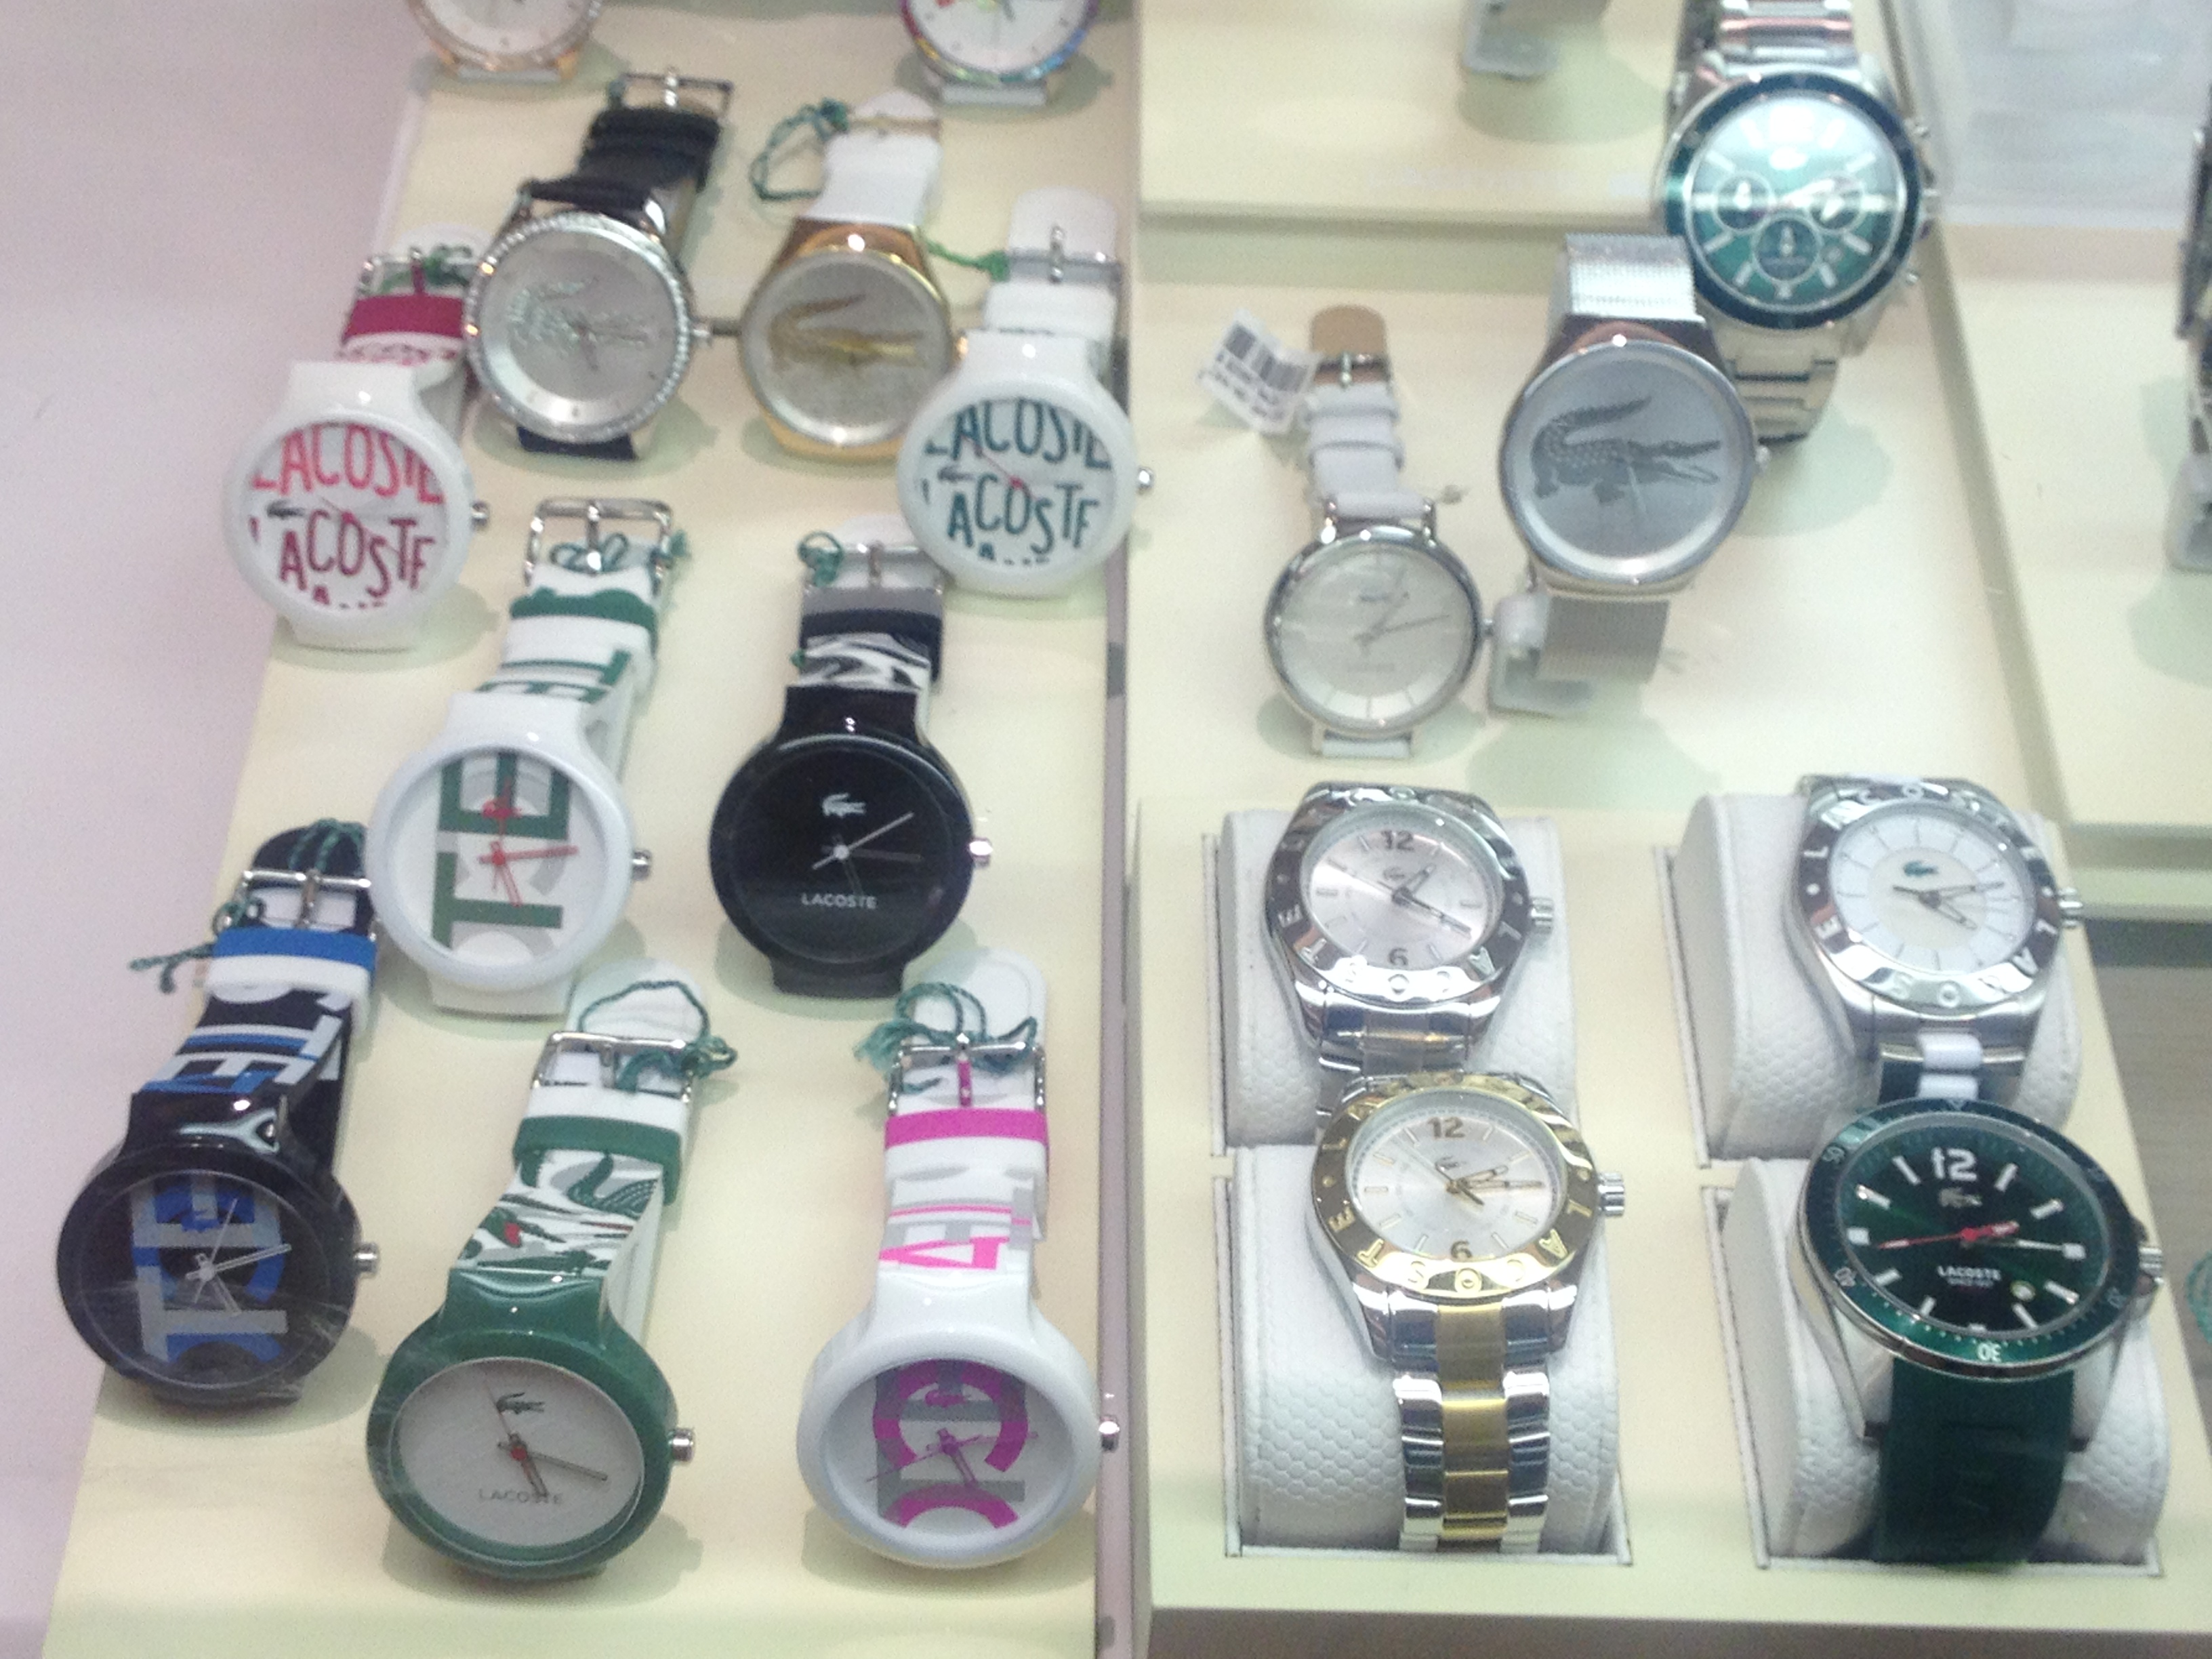 Lacost Watches